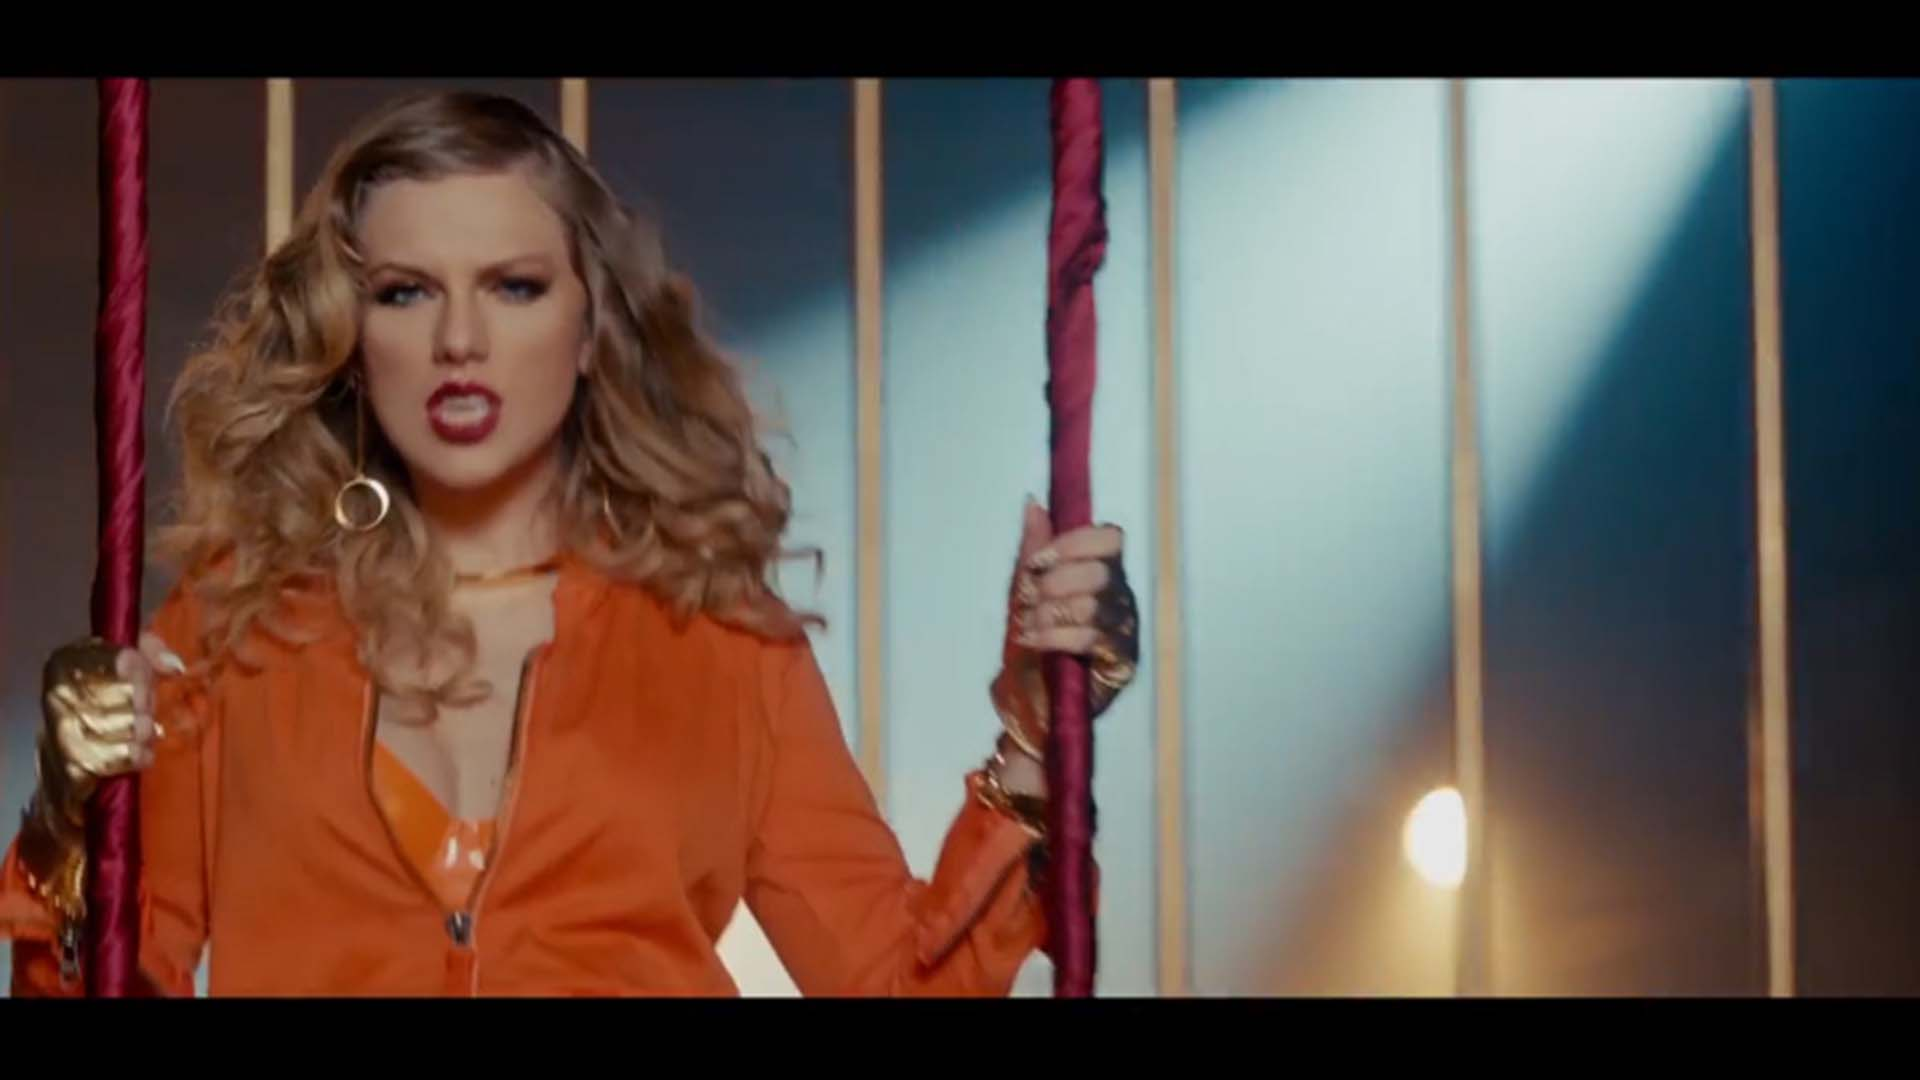 Taylor Swift - Look What You Made Me Do (7)